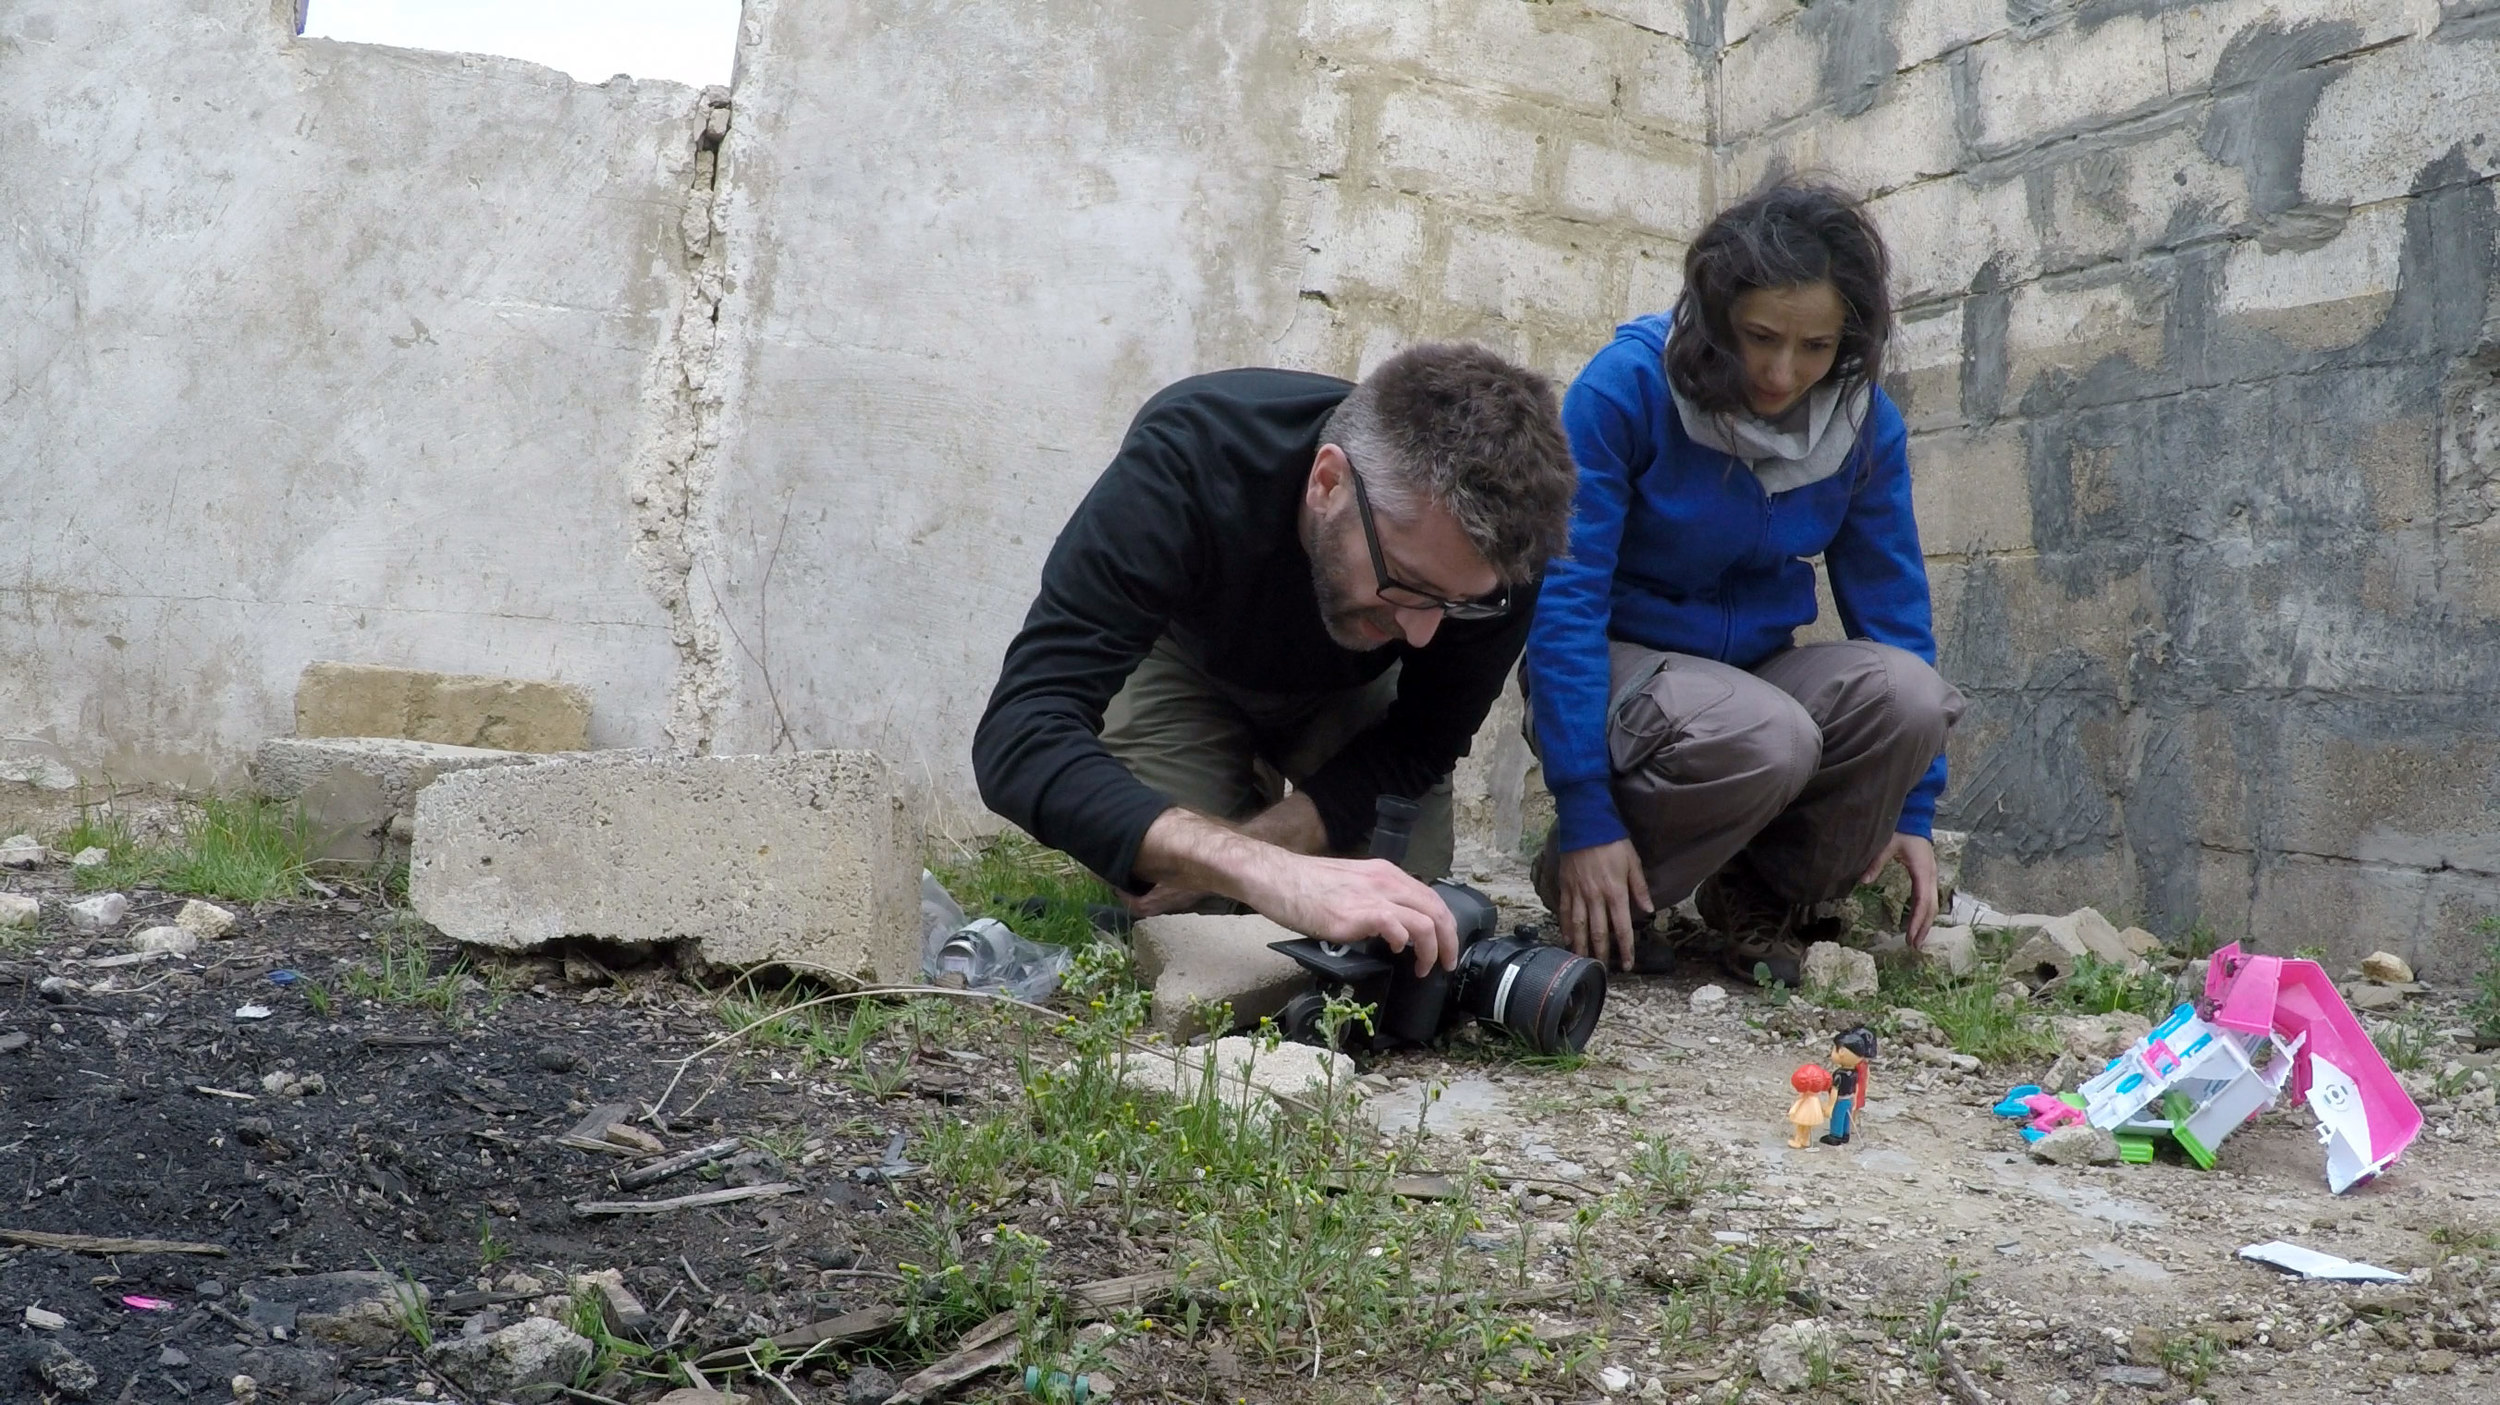 Working alongside Myra Saad at a location just down the road from the Kayany Foundation's Malala Yousafzai School near the Syrian border.